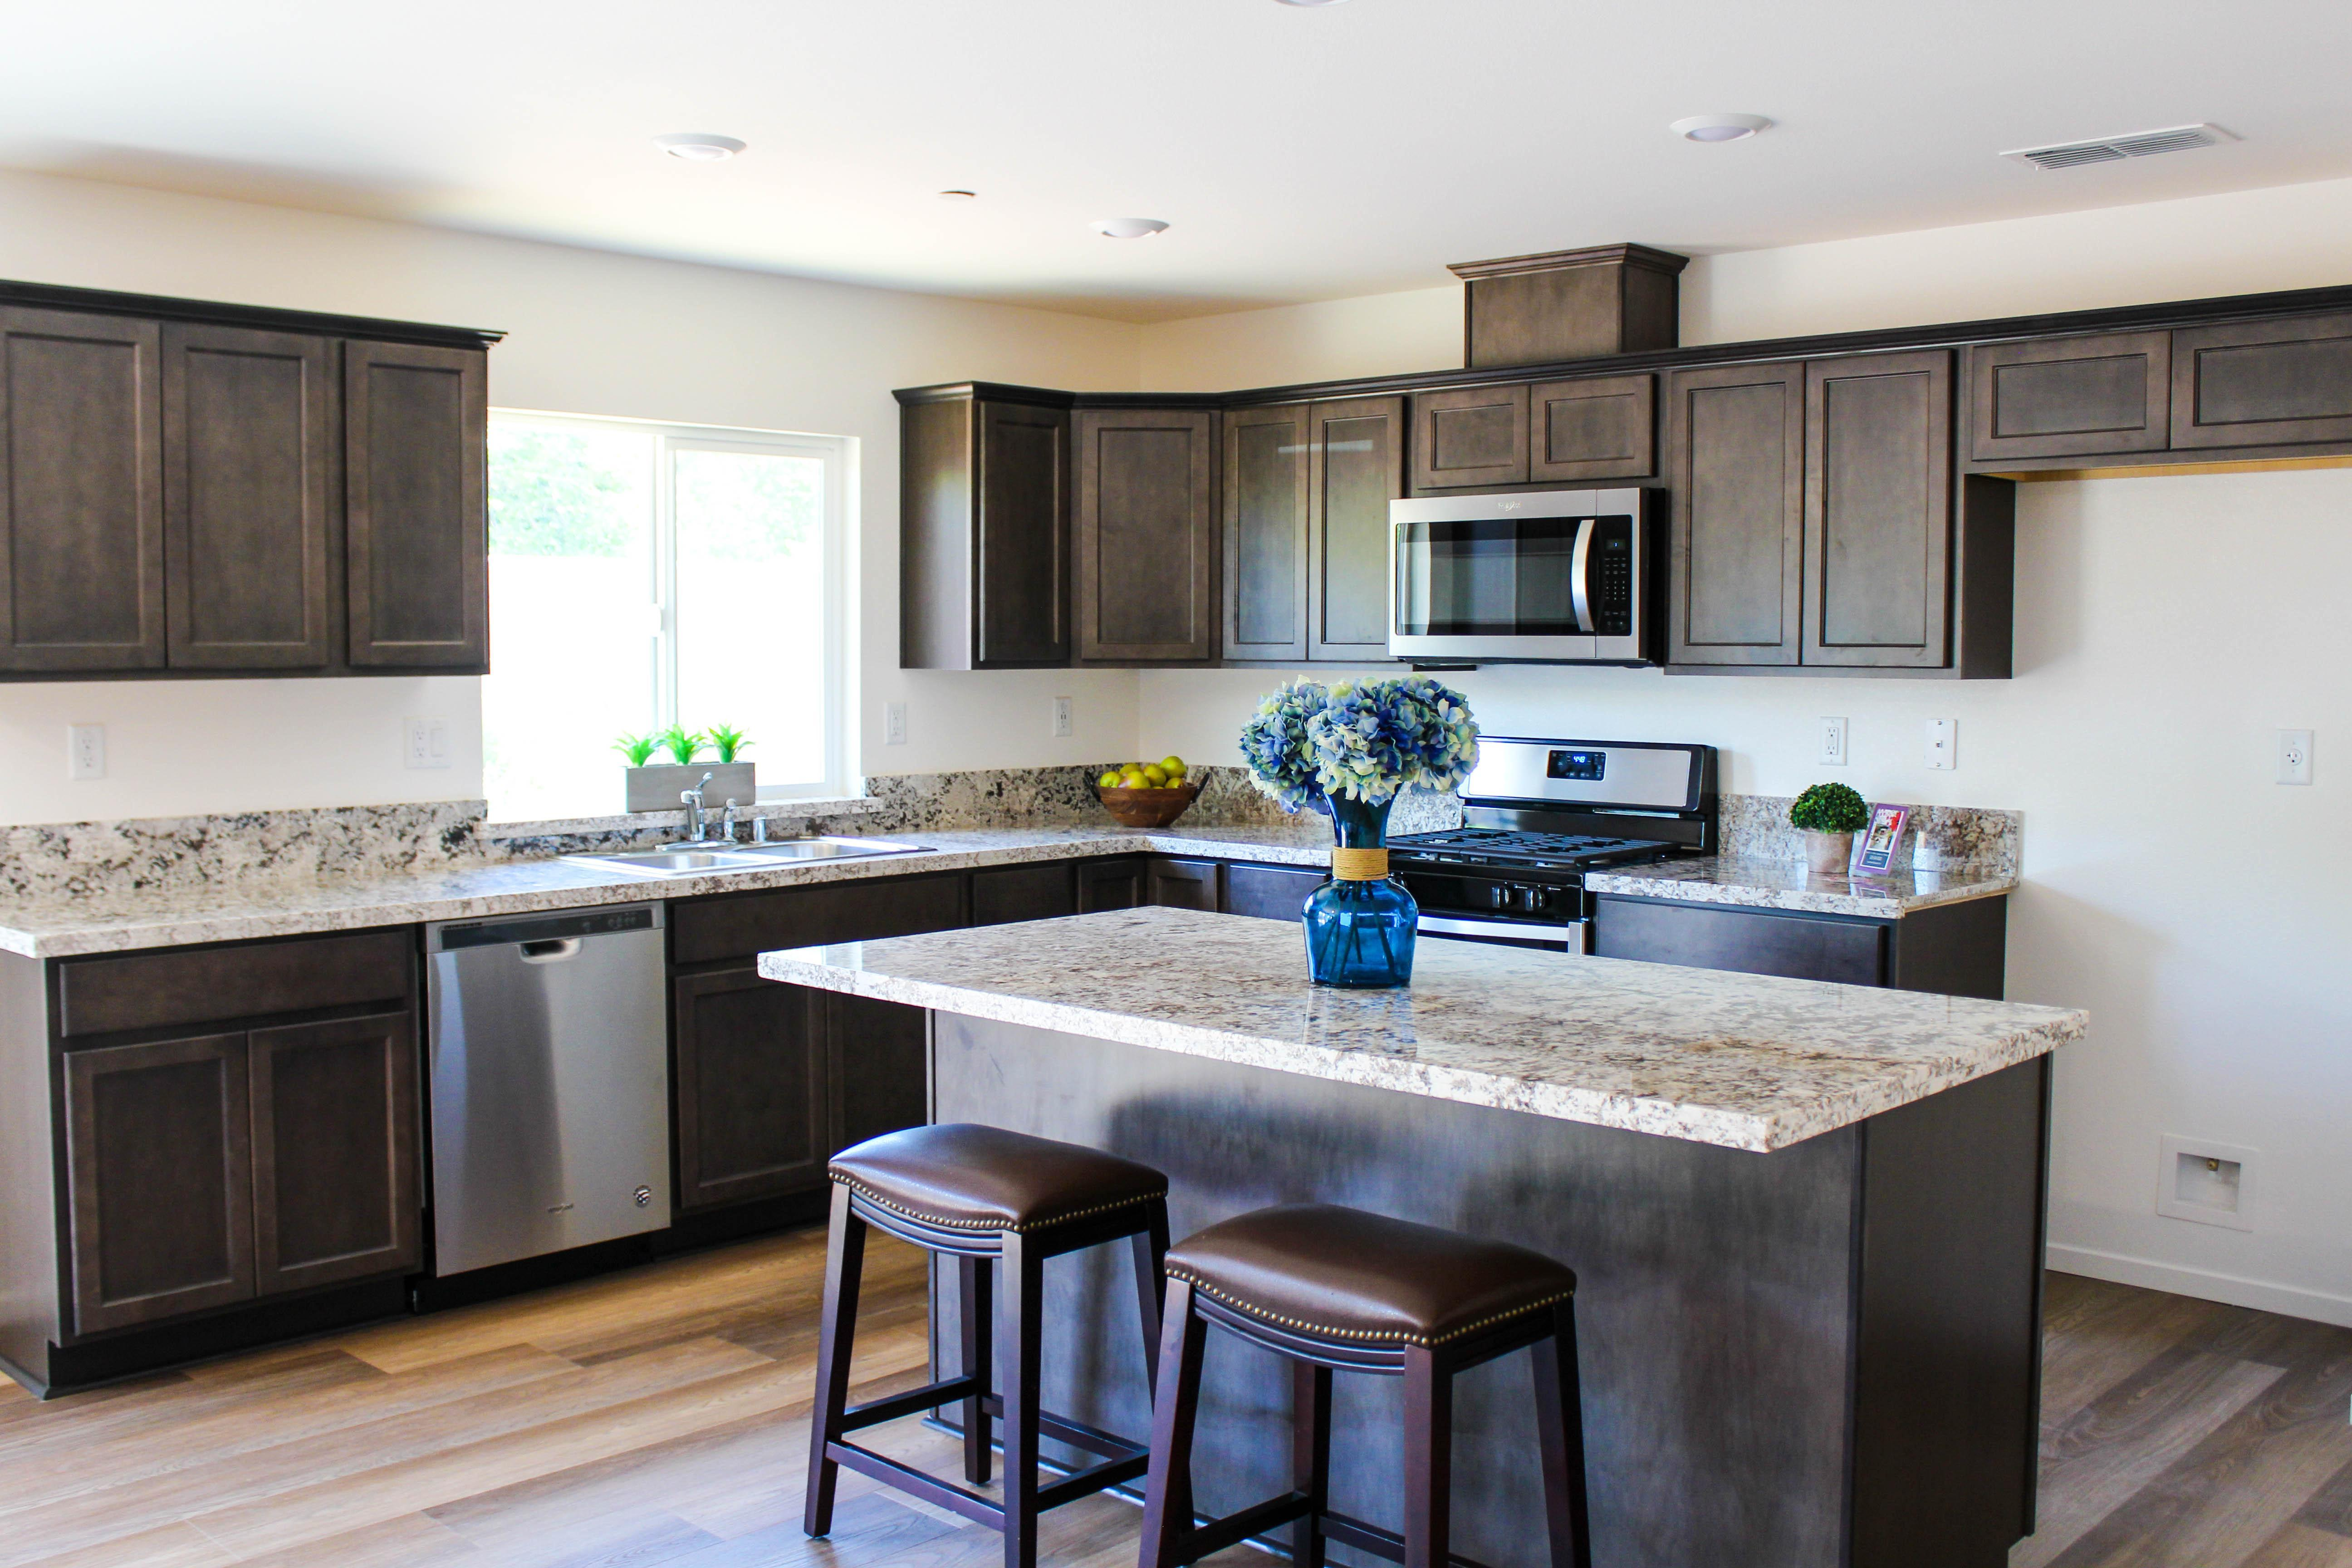 Kitchen featured in the 2C By Crowne Communities in Chico, CA